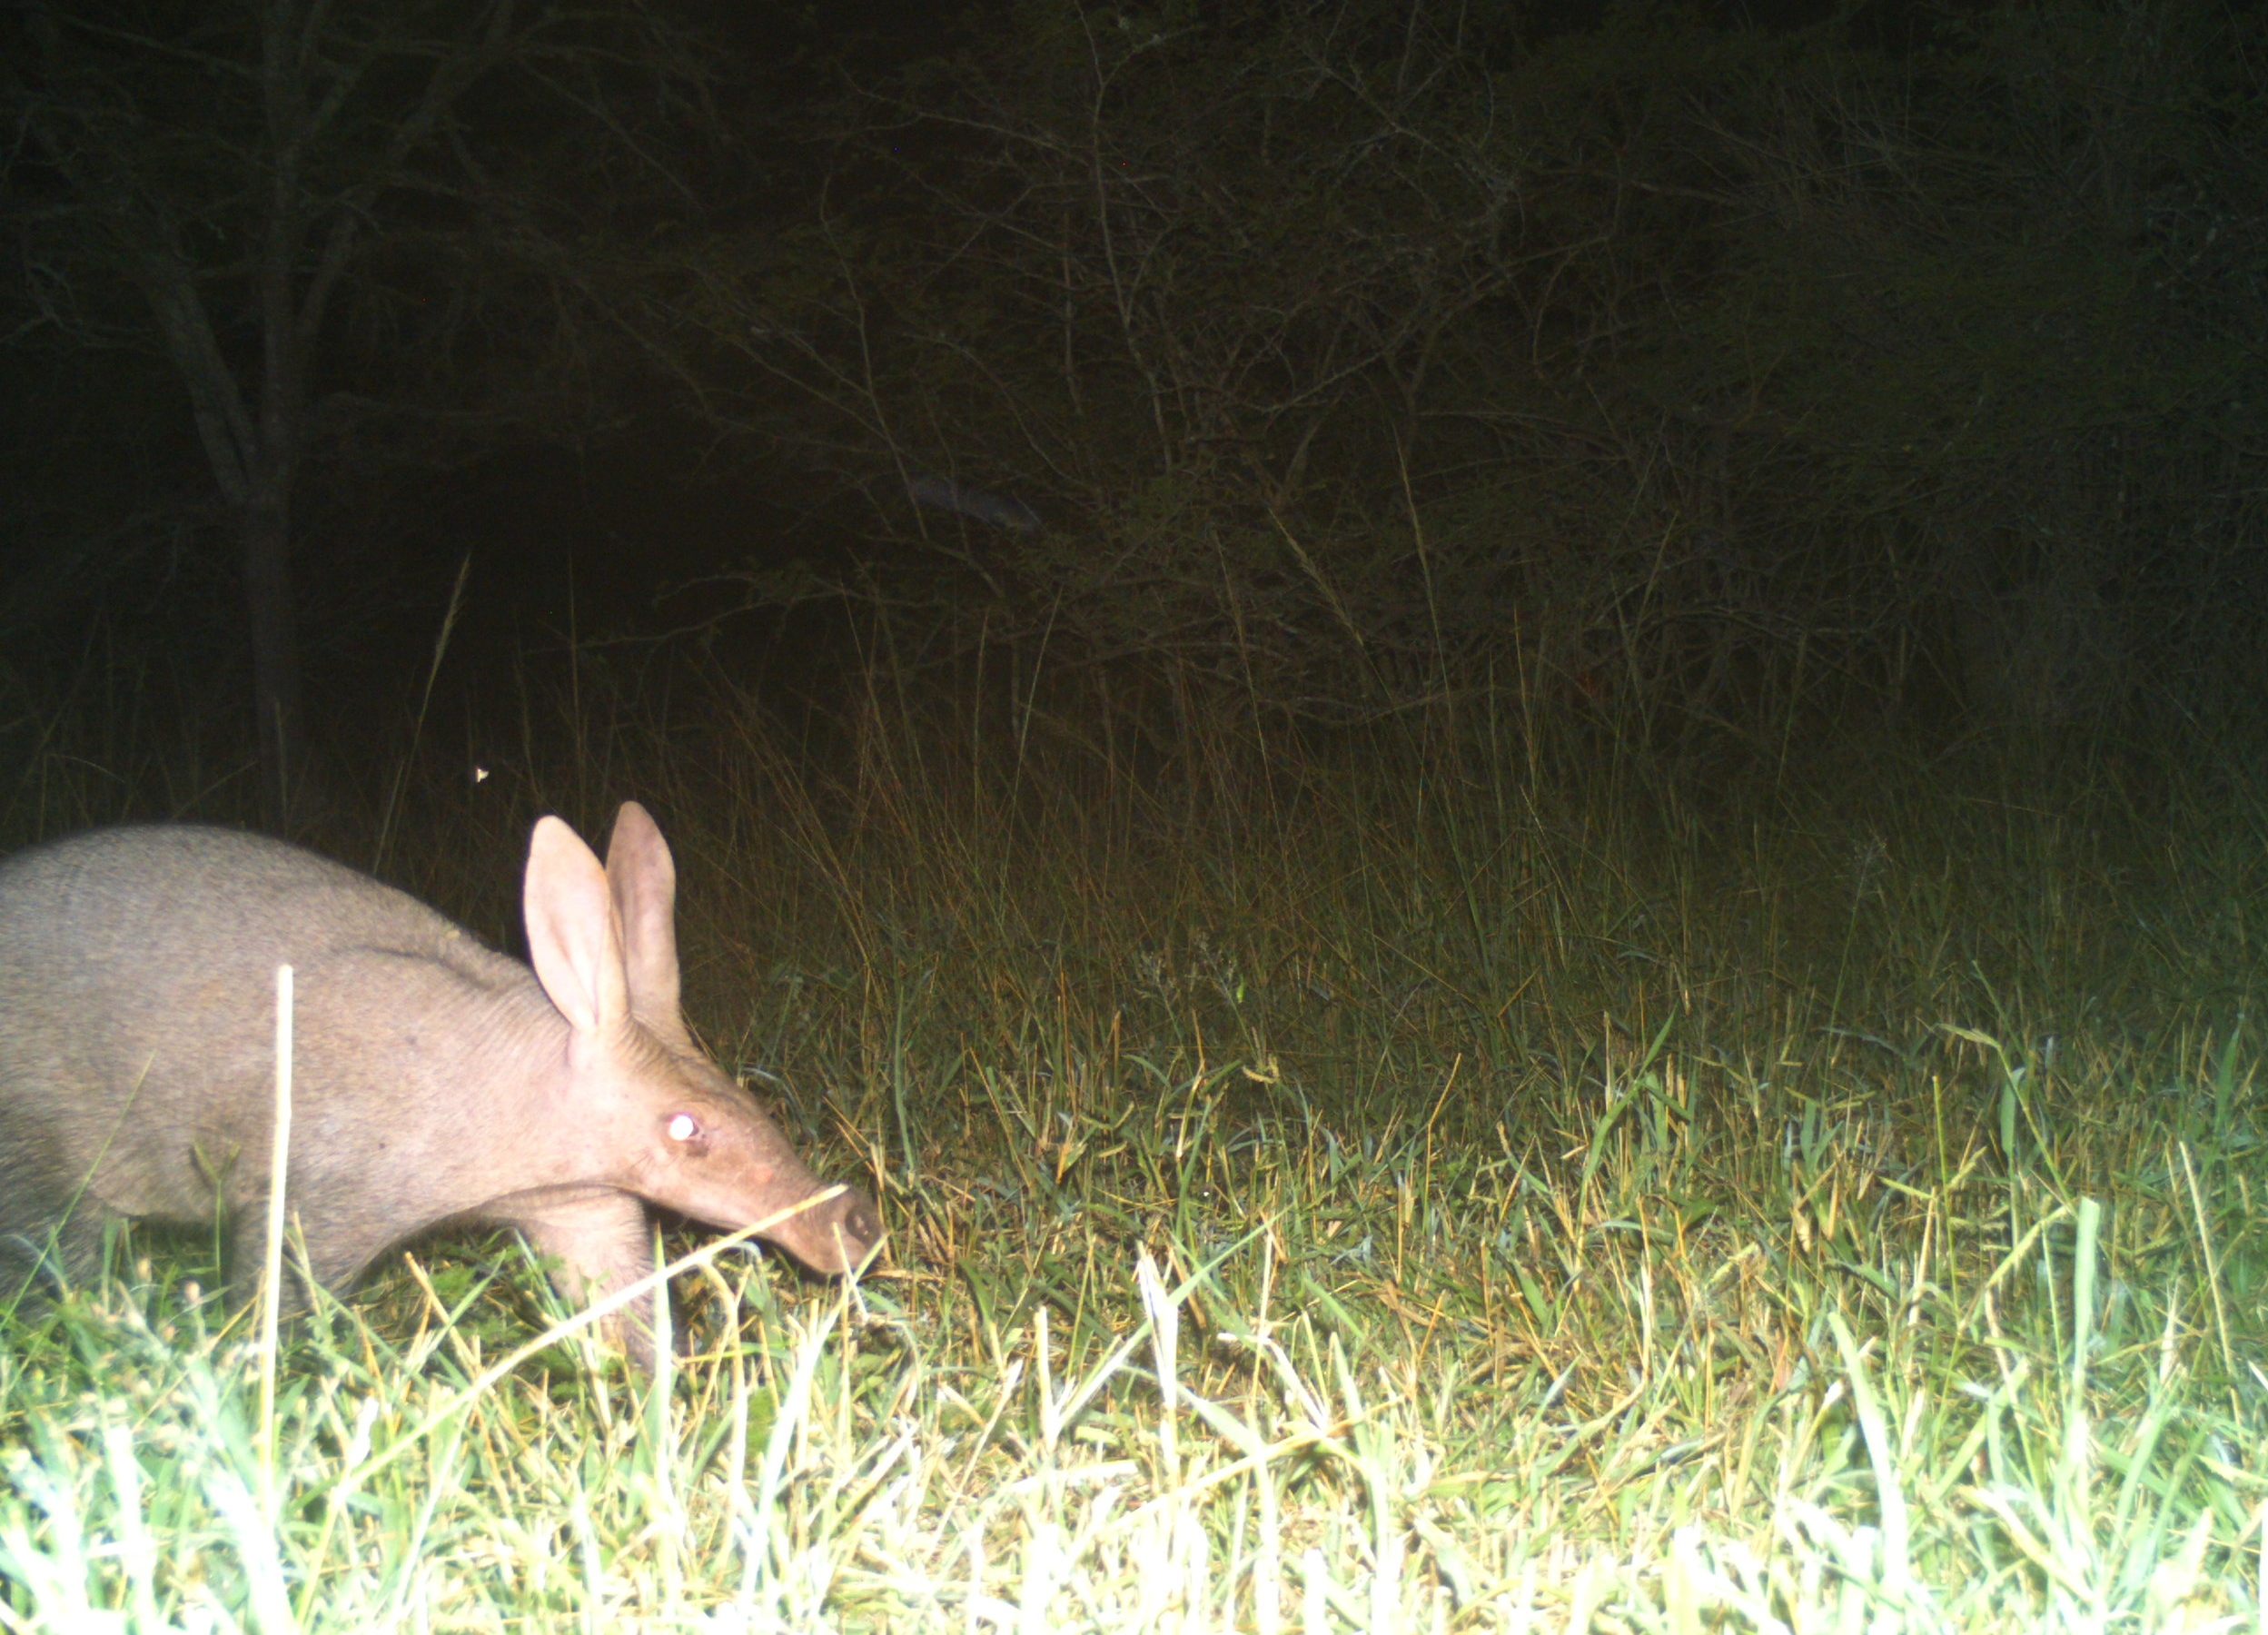 An Aardvark (Orycteropus afer) appeared once in the camera trap survey. Rarely seen during the day, it was photographed at 1am in the morning foraging for food.